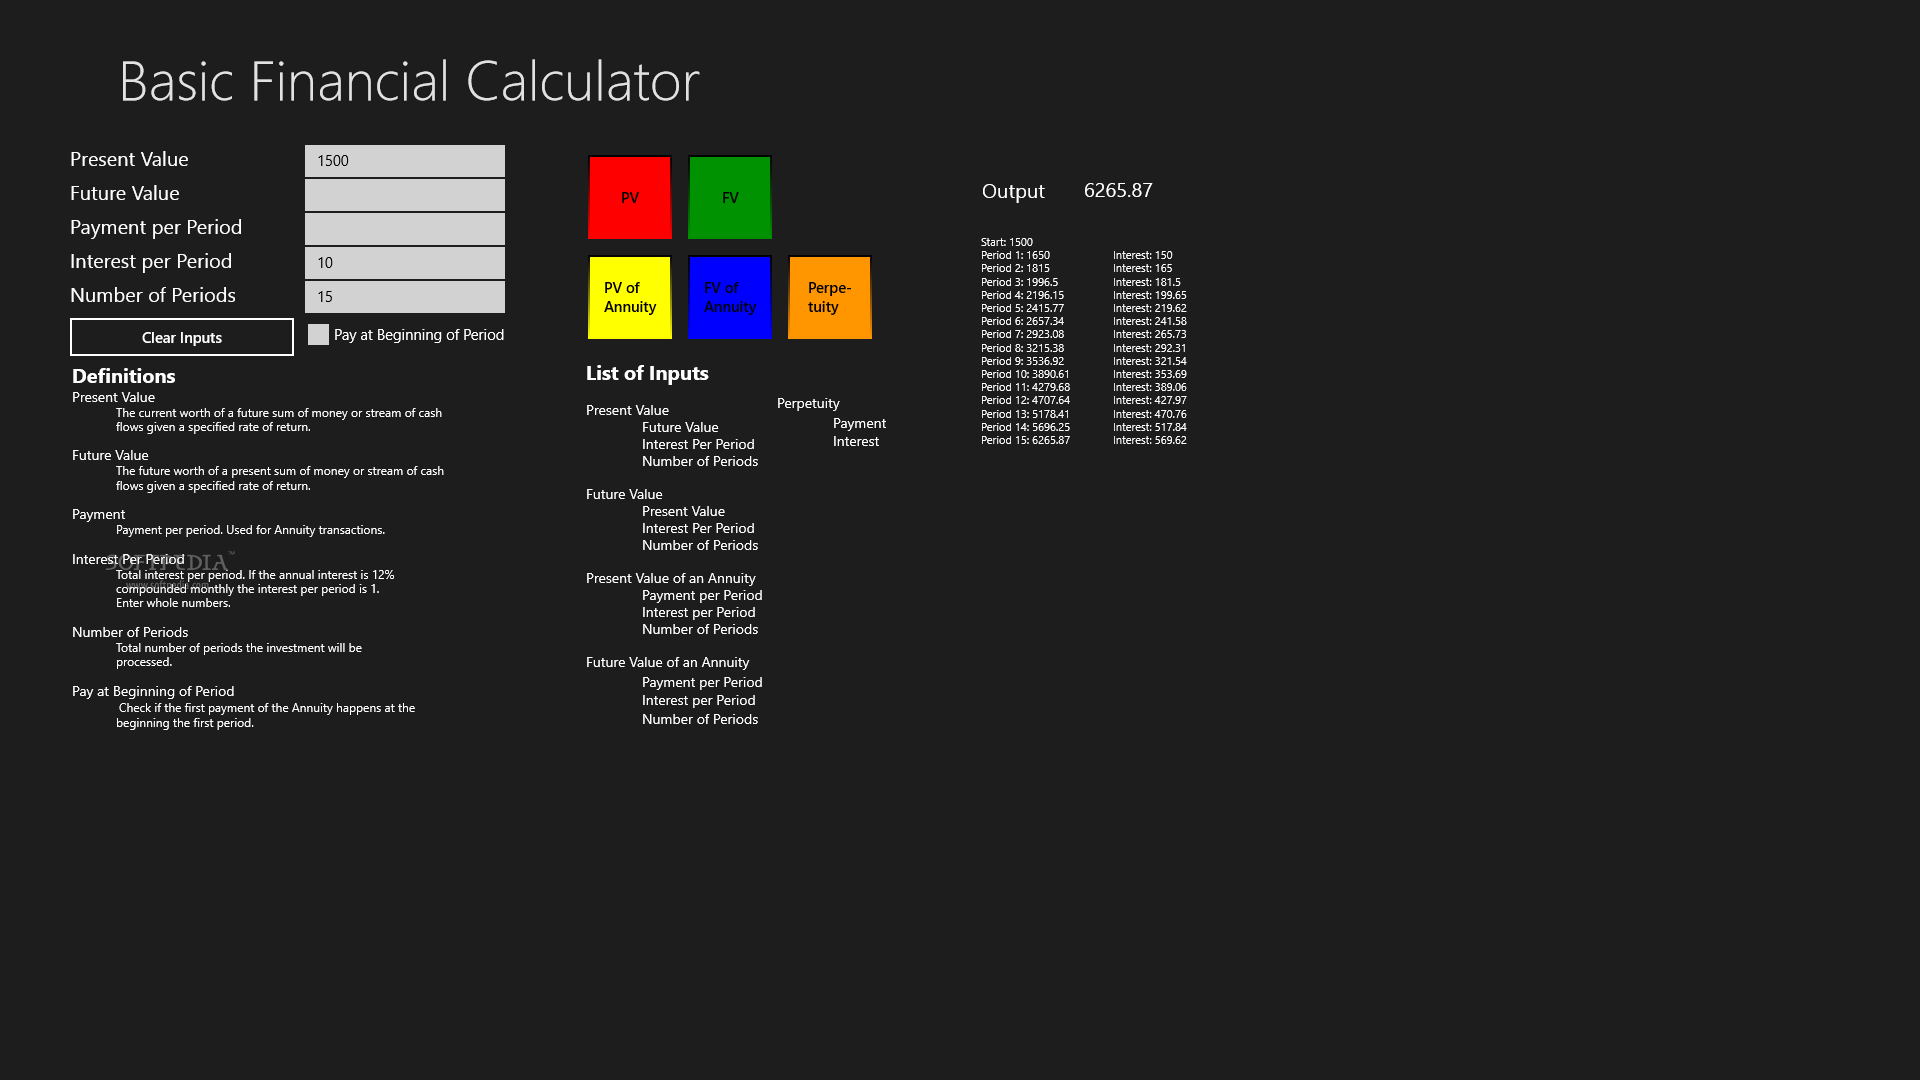 Basic Financial Calculator For Windows 8 Interface Displays The Formula Details And